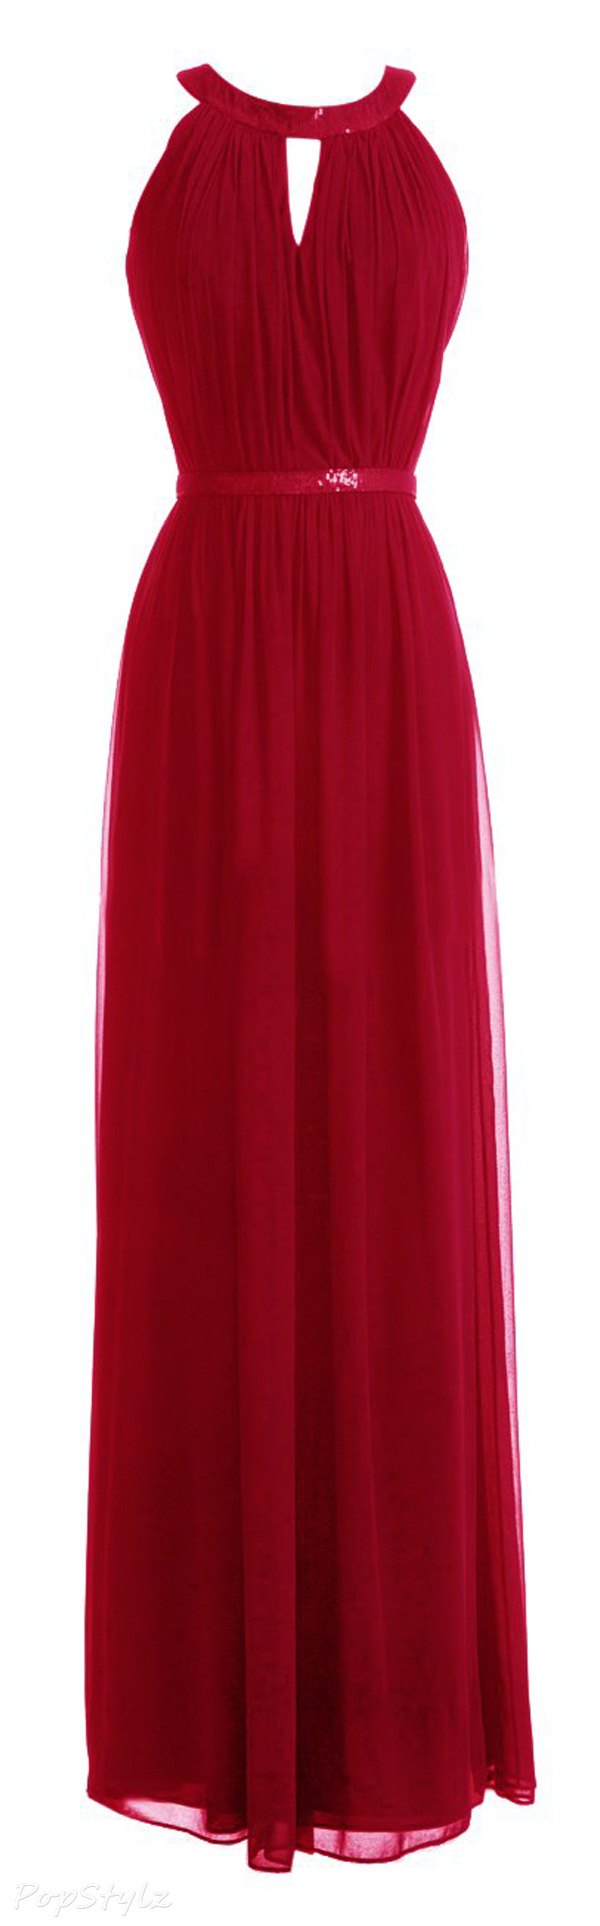 Diyouth Collar Sequins Belt A Line Long Chiffon Evening Dress